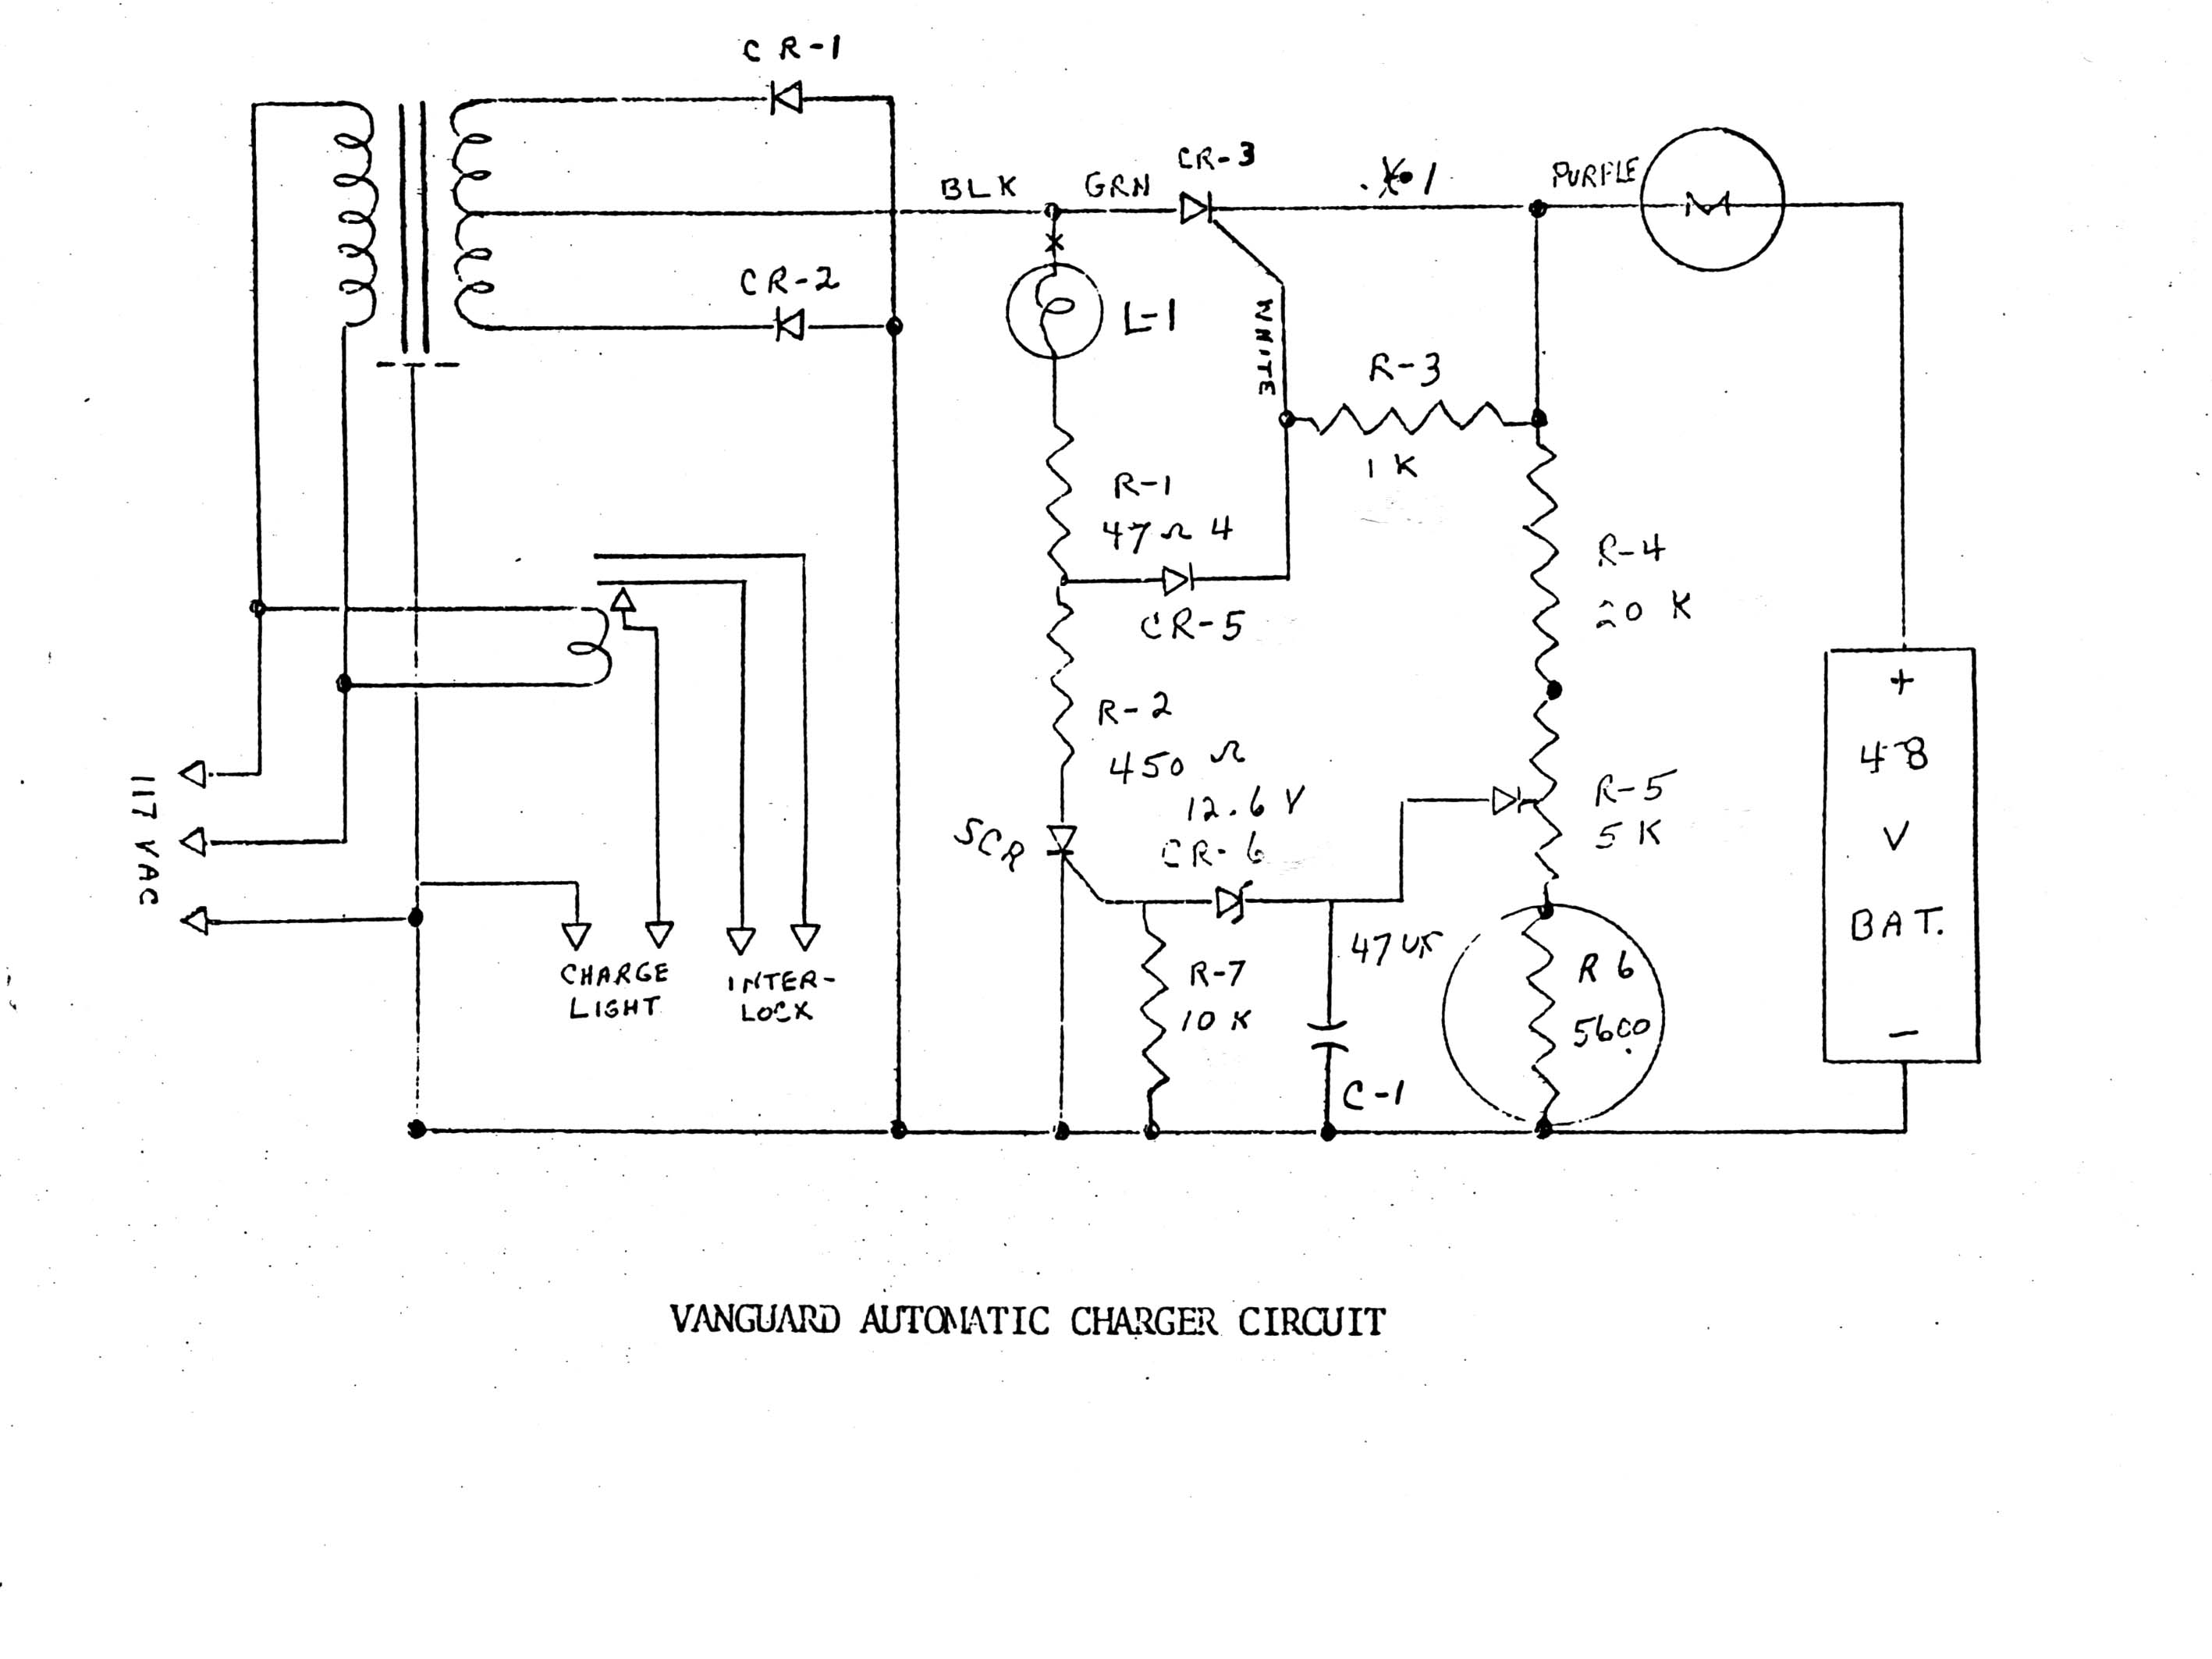 Curtis 36 Volt Battery Gauge Wiring Diagram